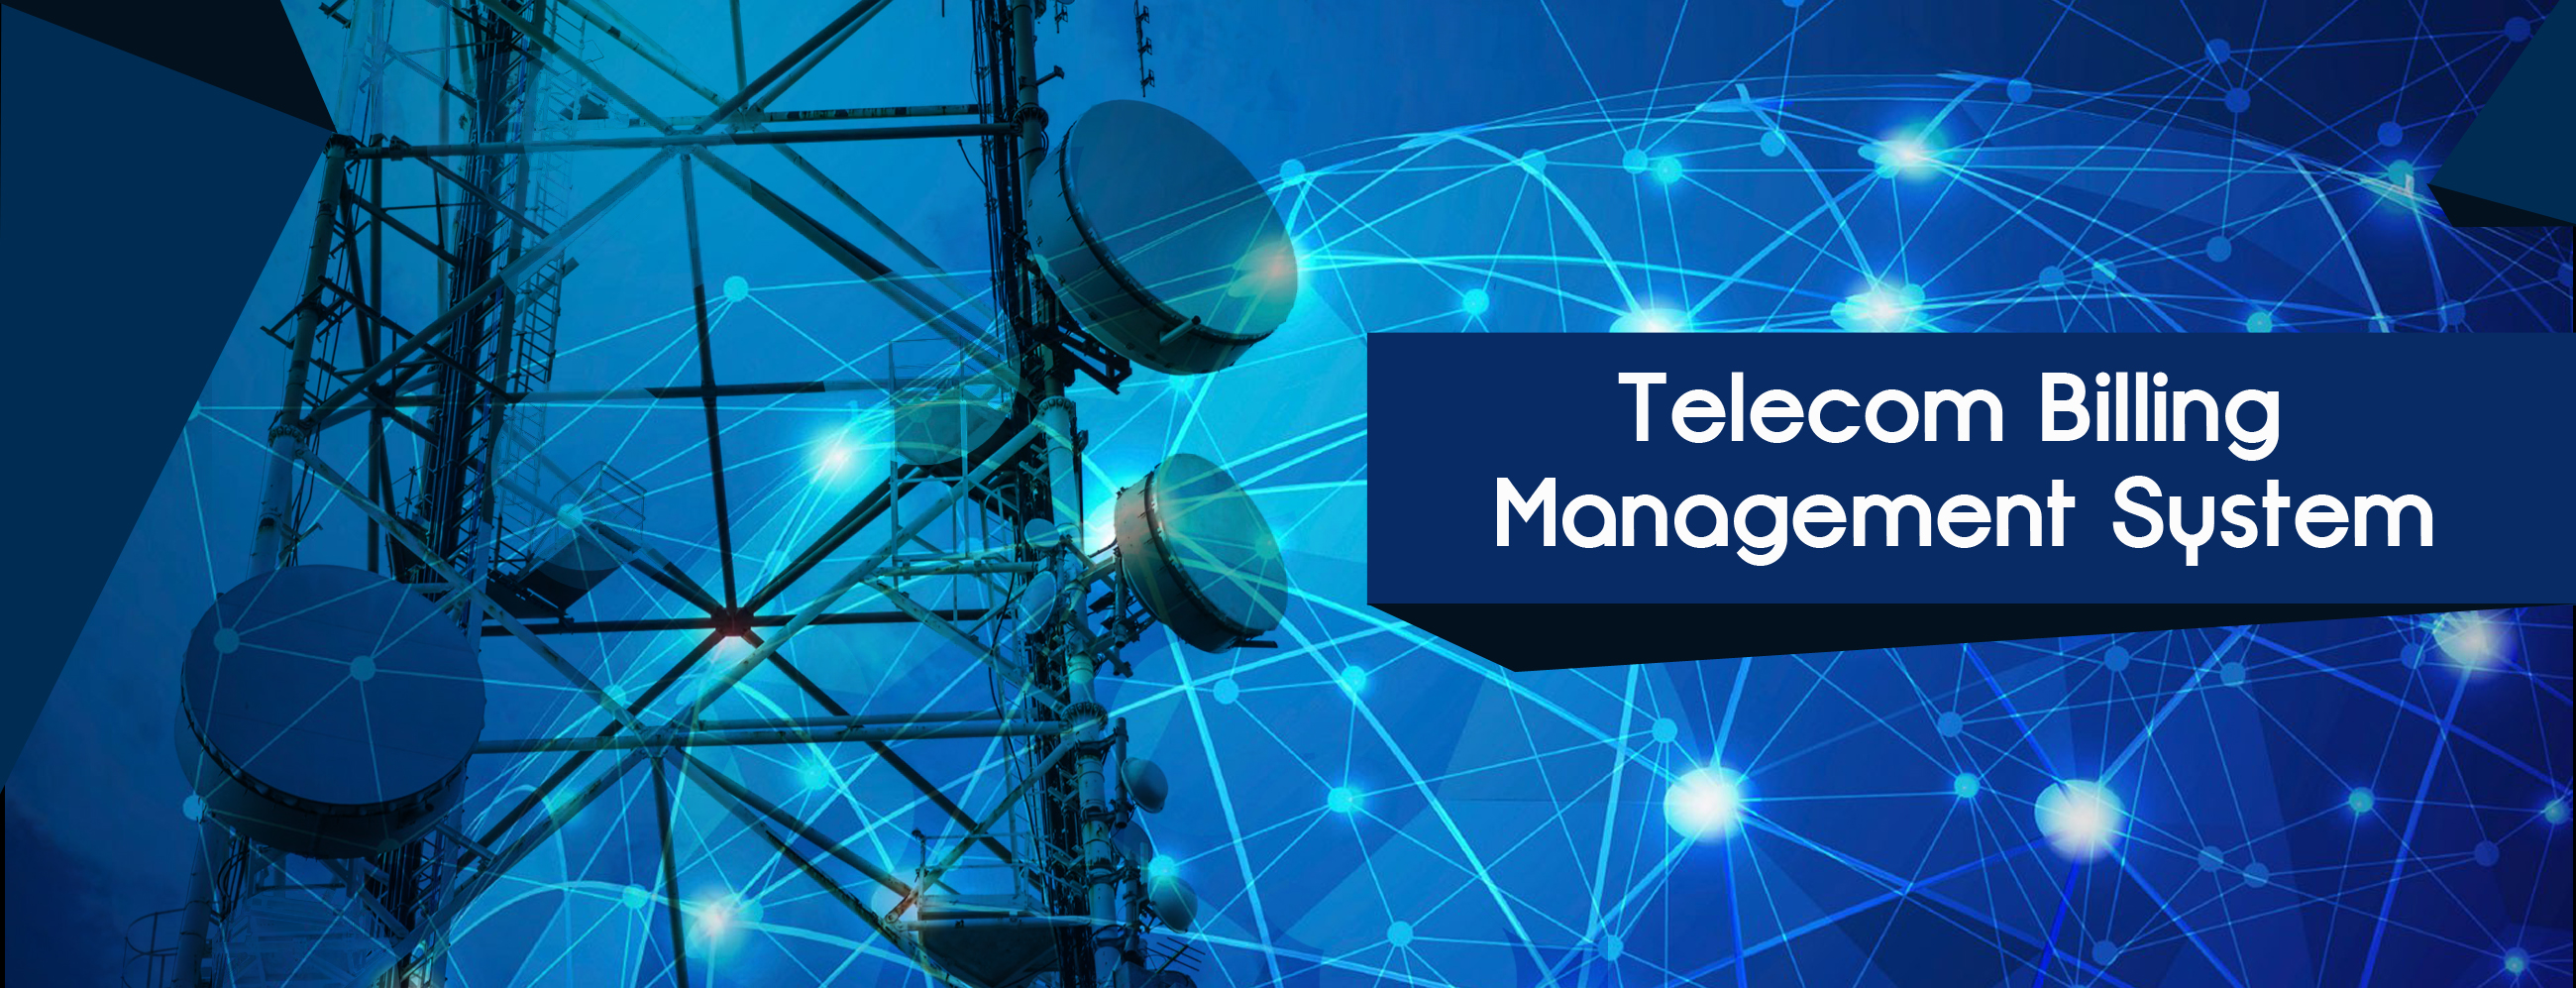 Telecom Billing Management System